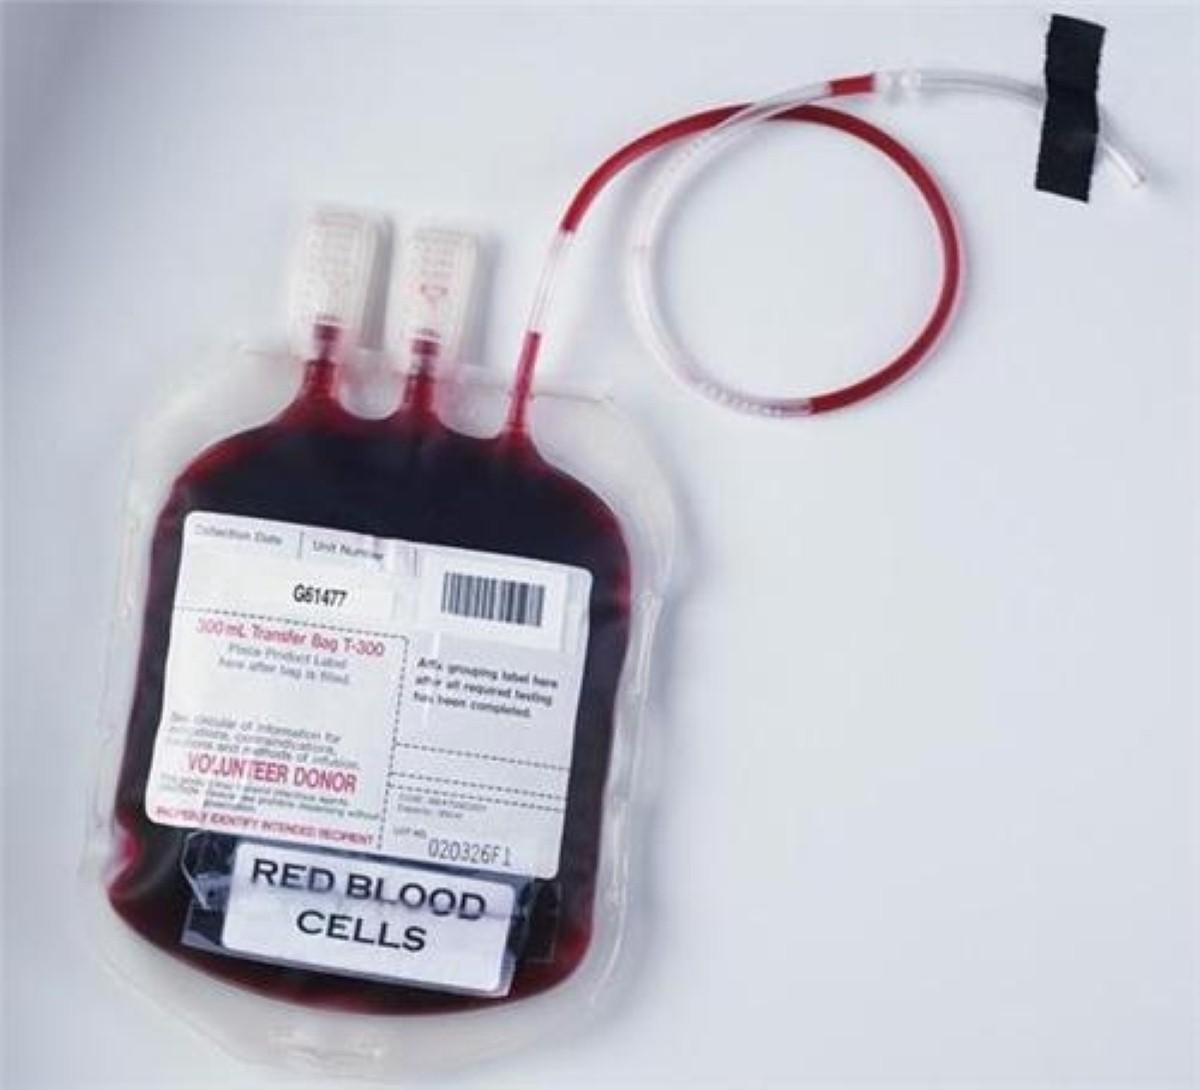 New drug and blood markers to benefit leukaemia patients?